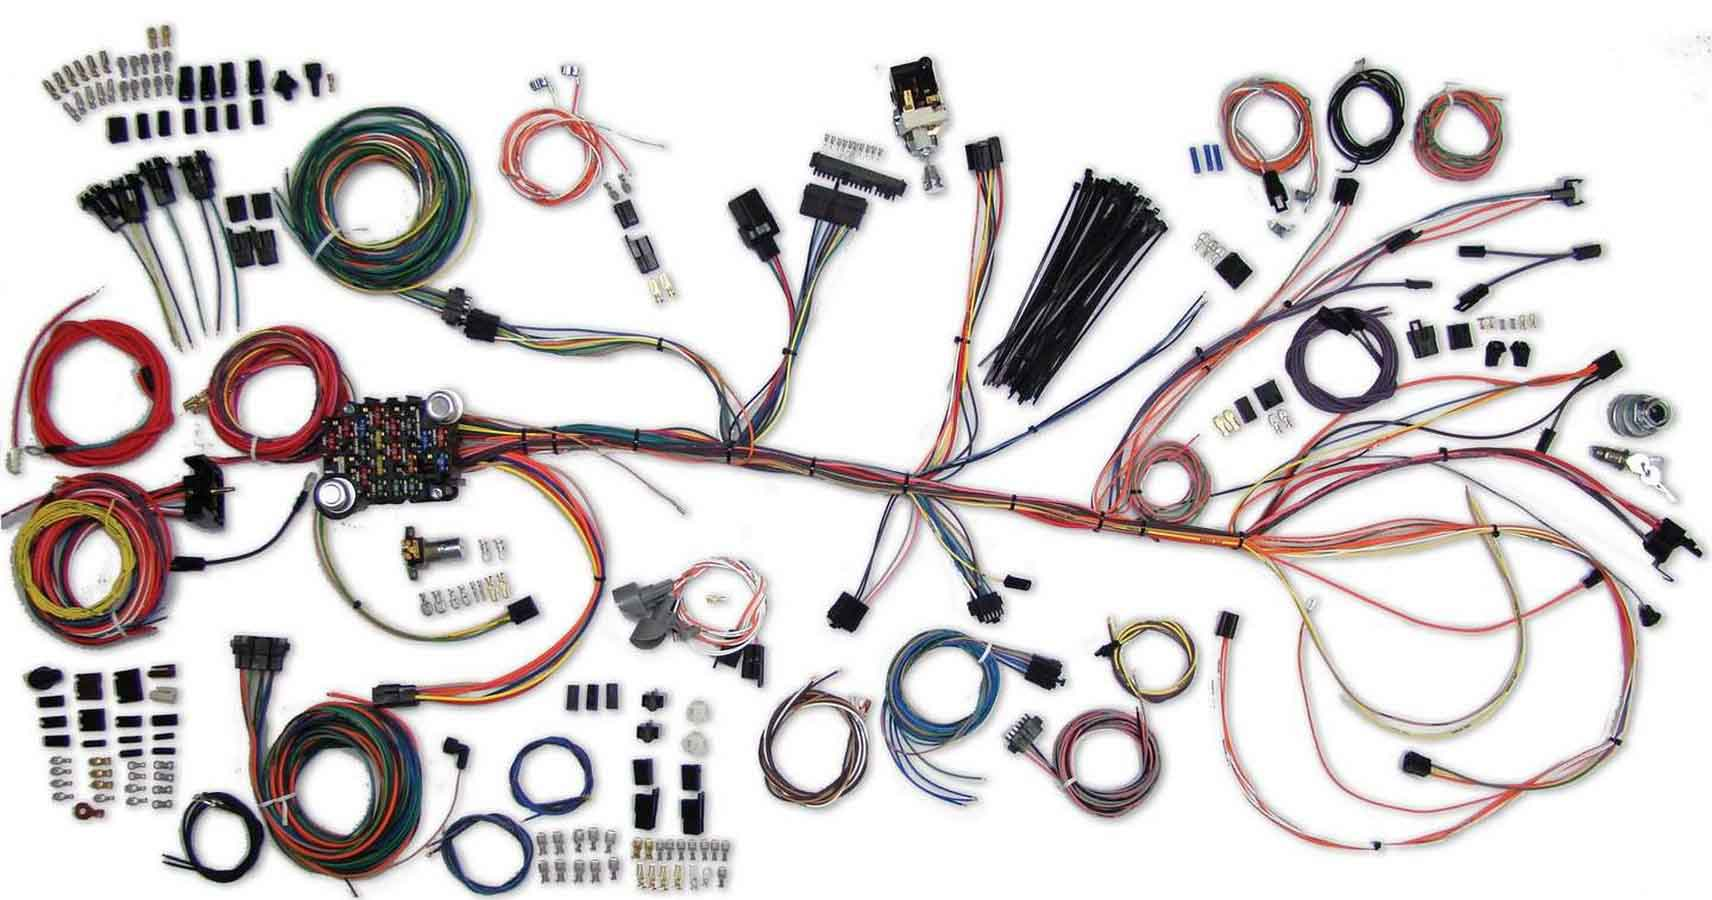 Shop For Wiring Harnesses Etheridge Race Parts 1964 Gmc Truck Diagram 64 67 Chevelle Wire Harness System